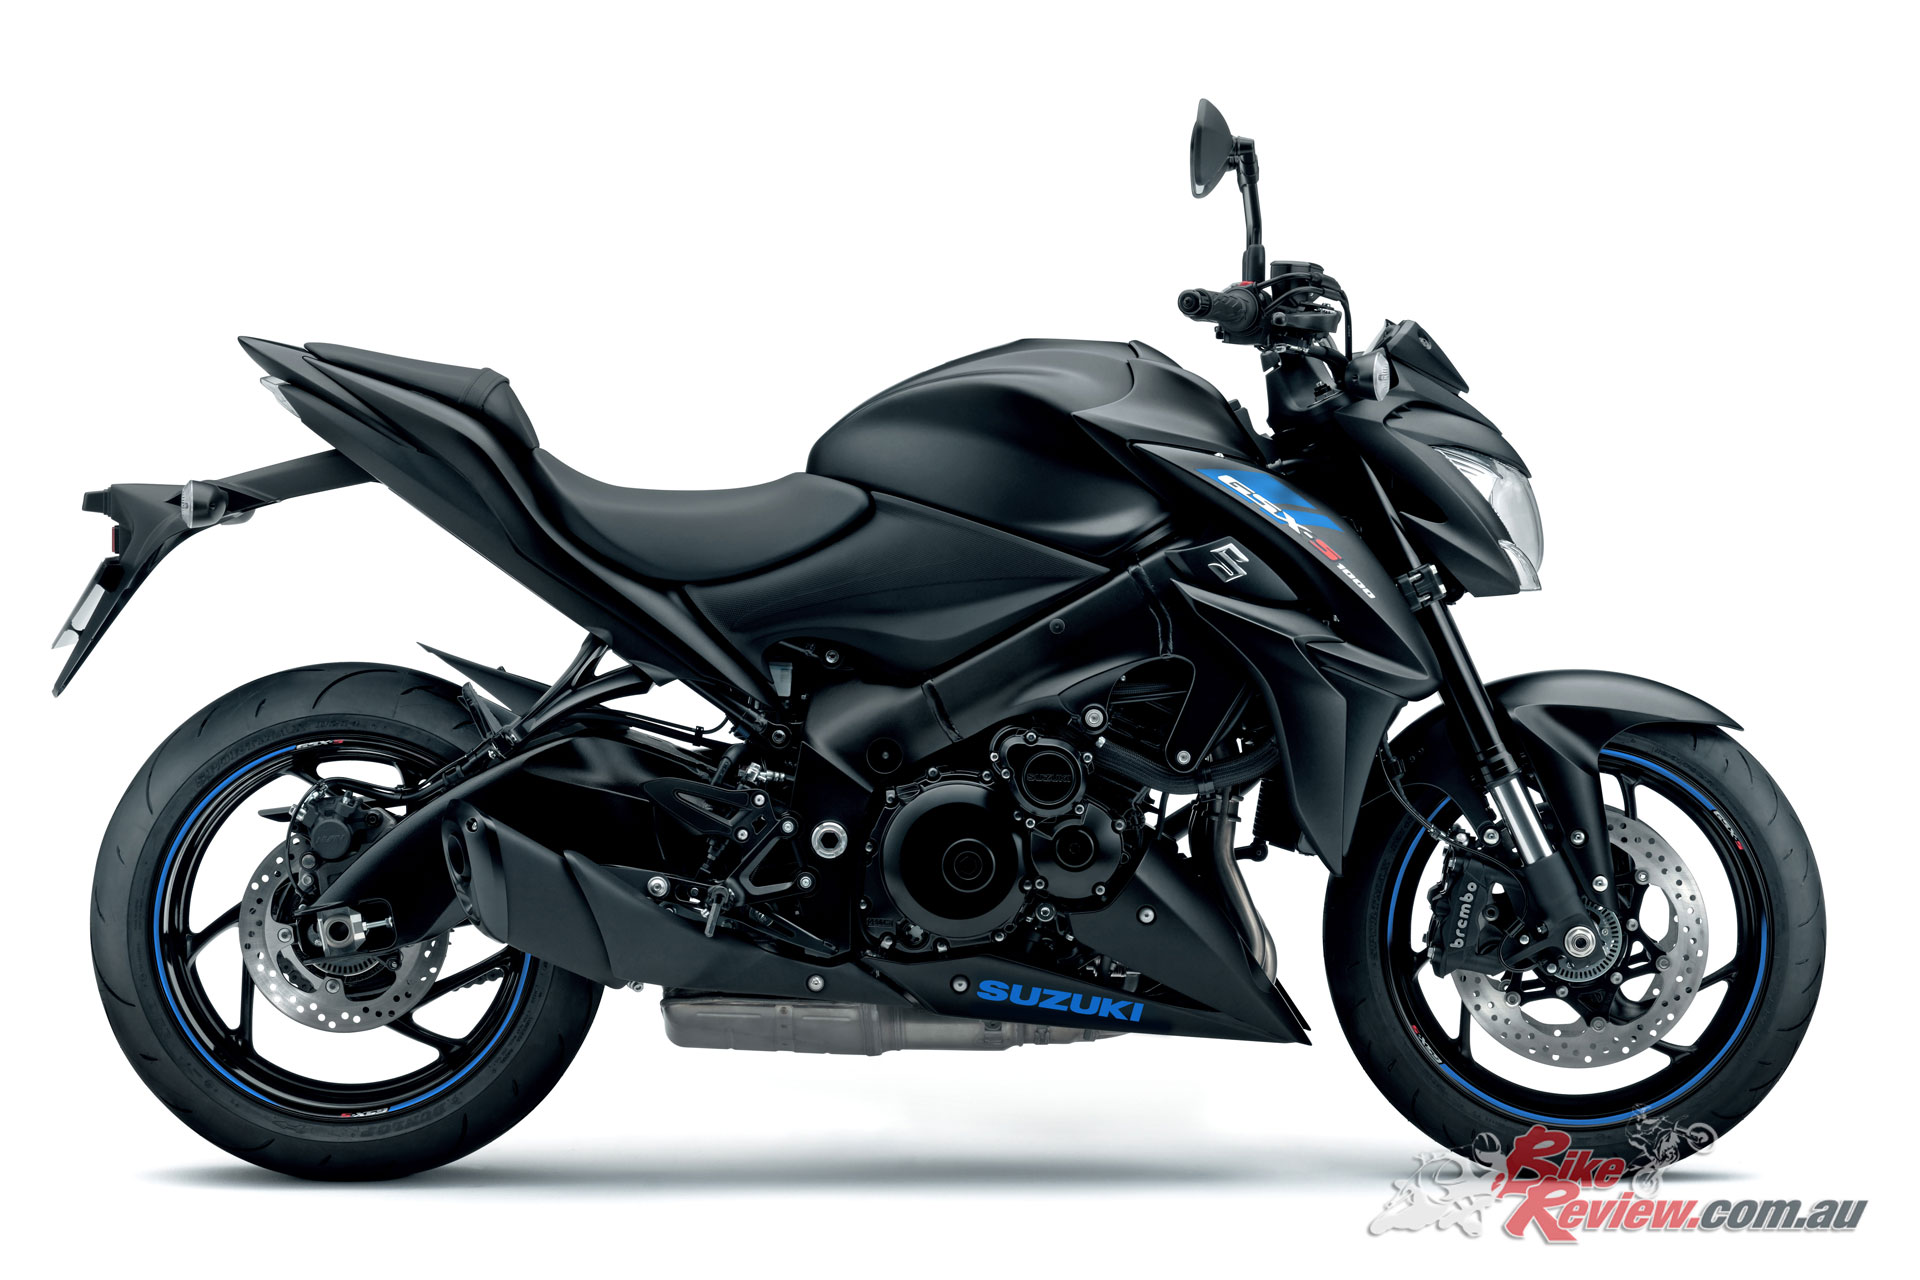 2019 Suzuki GSX-S1000 - Metallic Matte Black (Z-model)